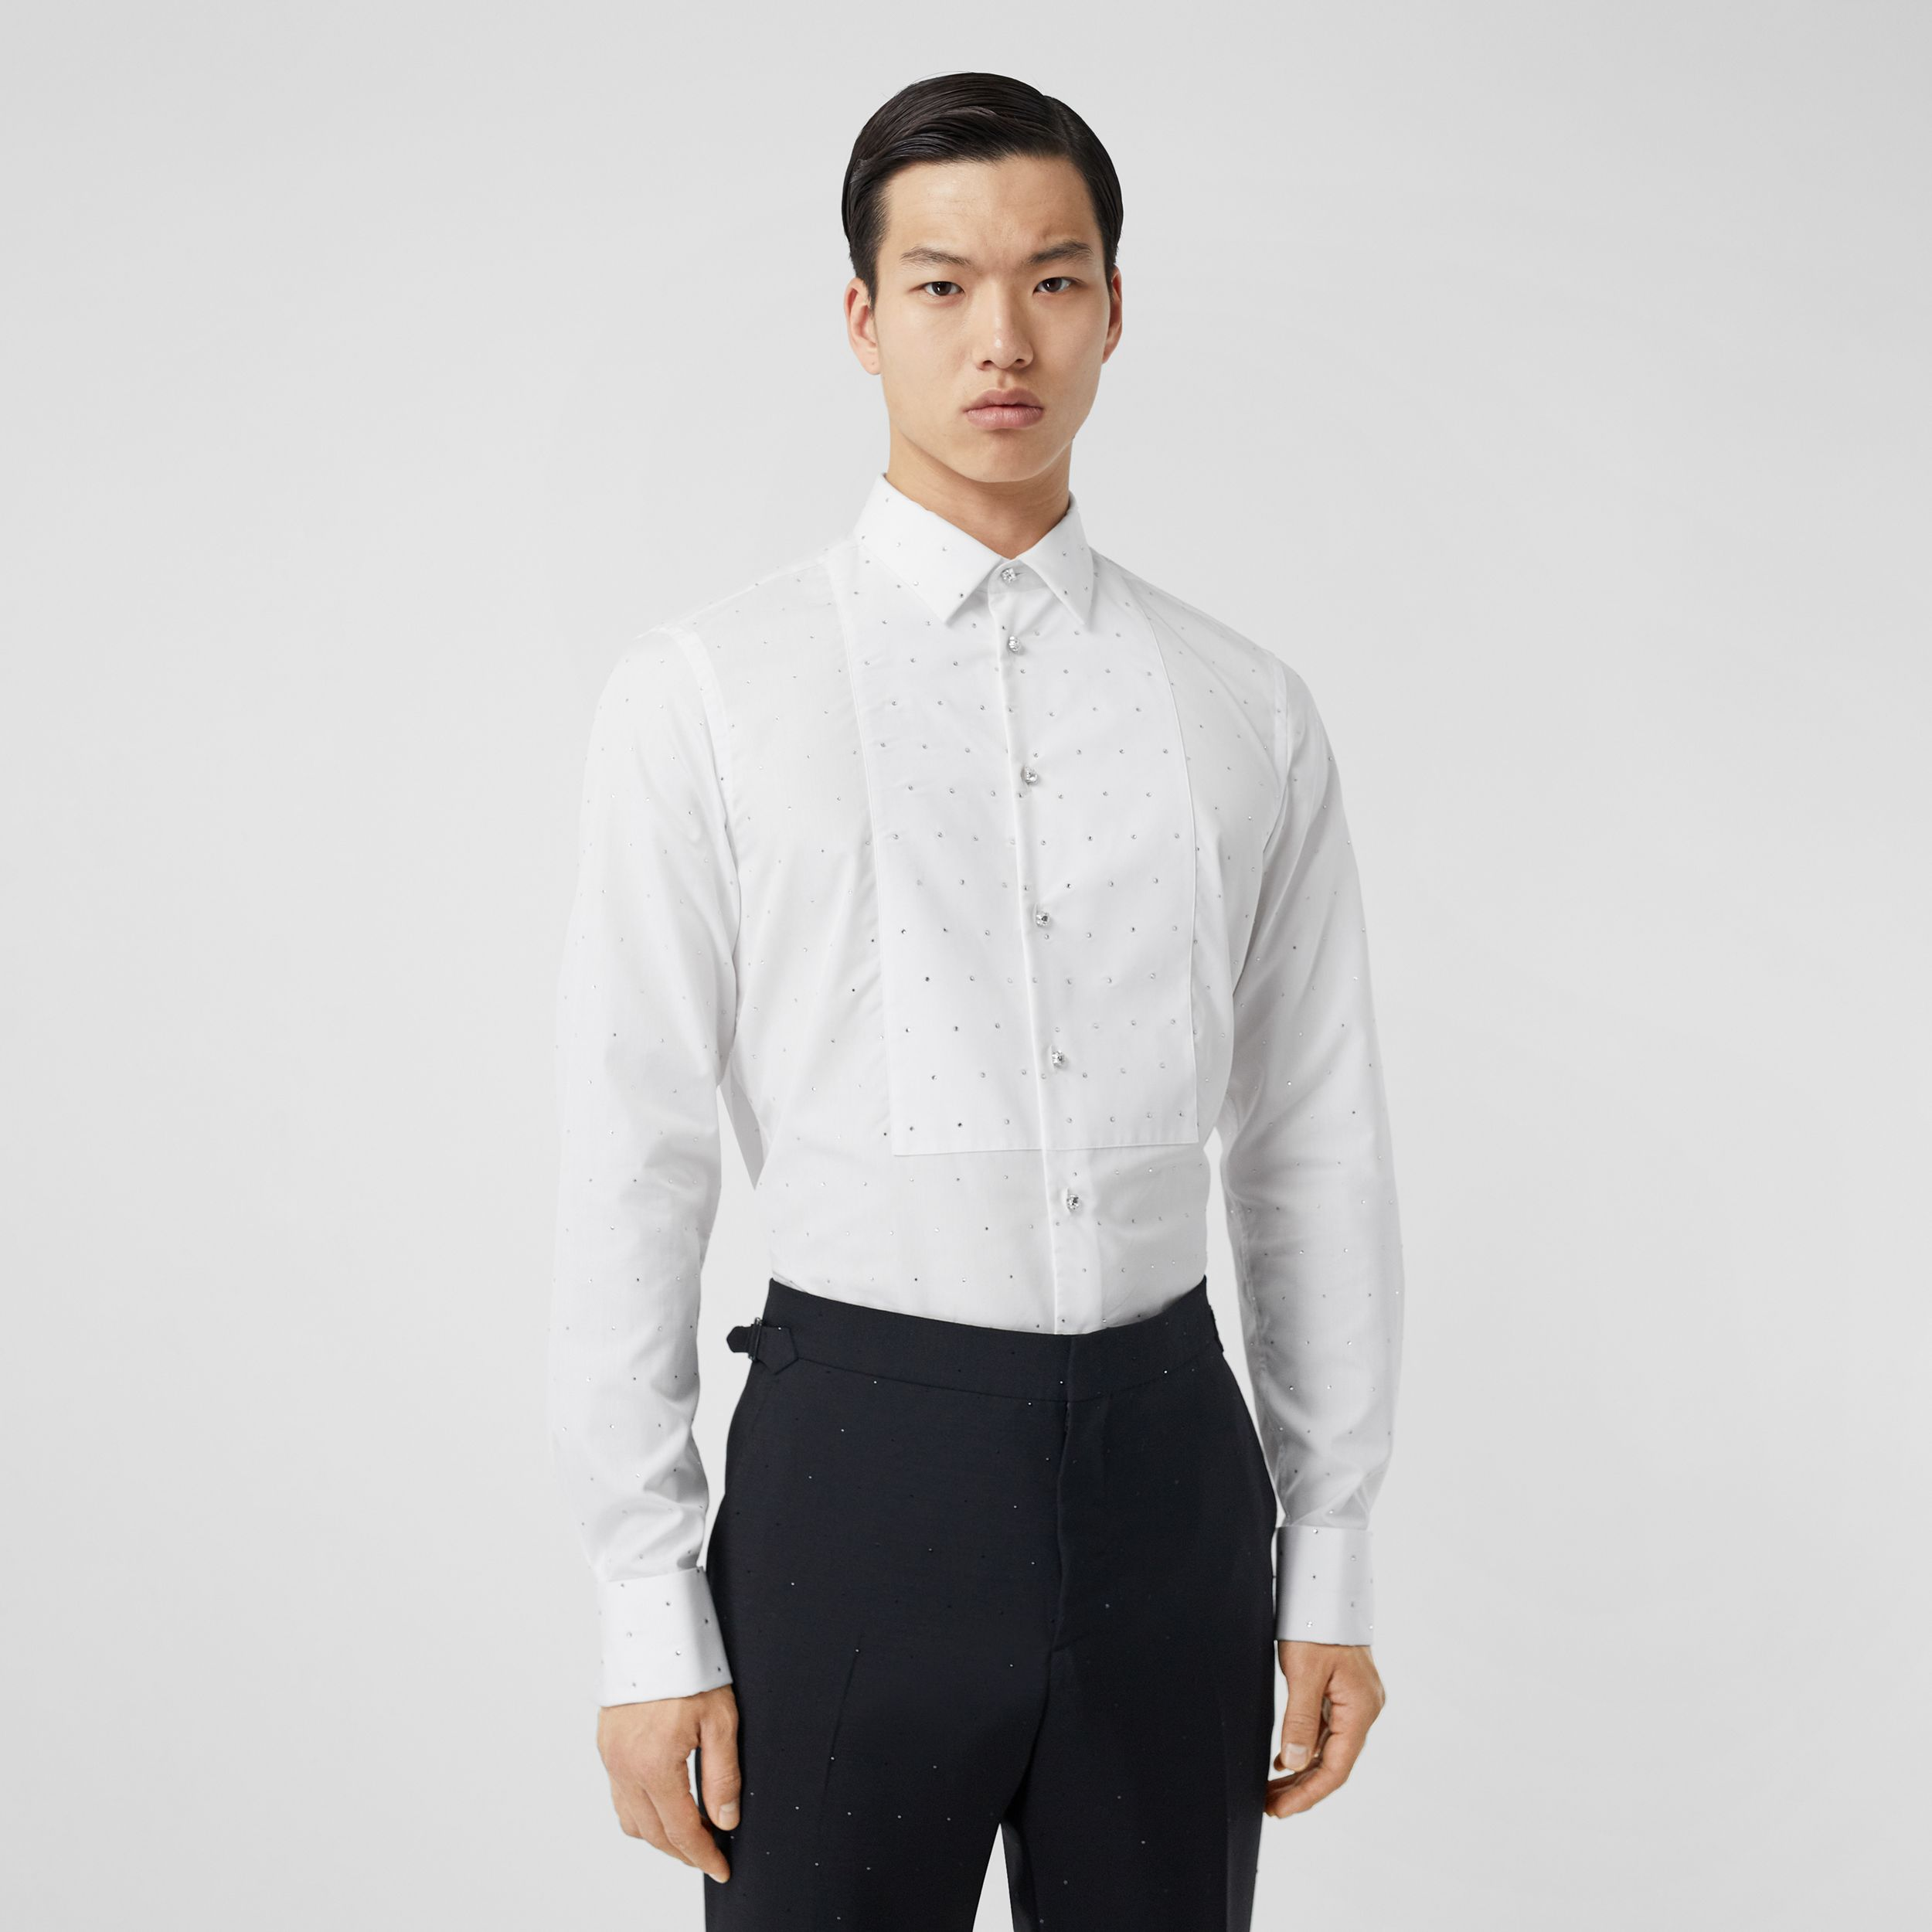 Embellished Cotton Poplin Dress Shirt in Optic White - Men | Burberry Hong Kong S.A.R. - 1